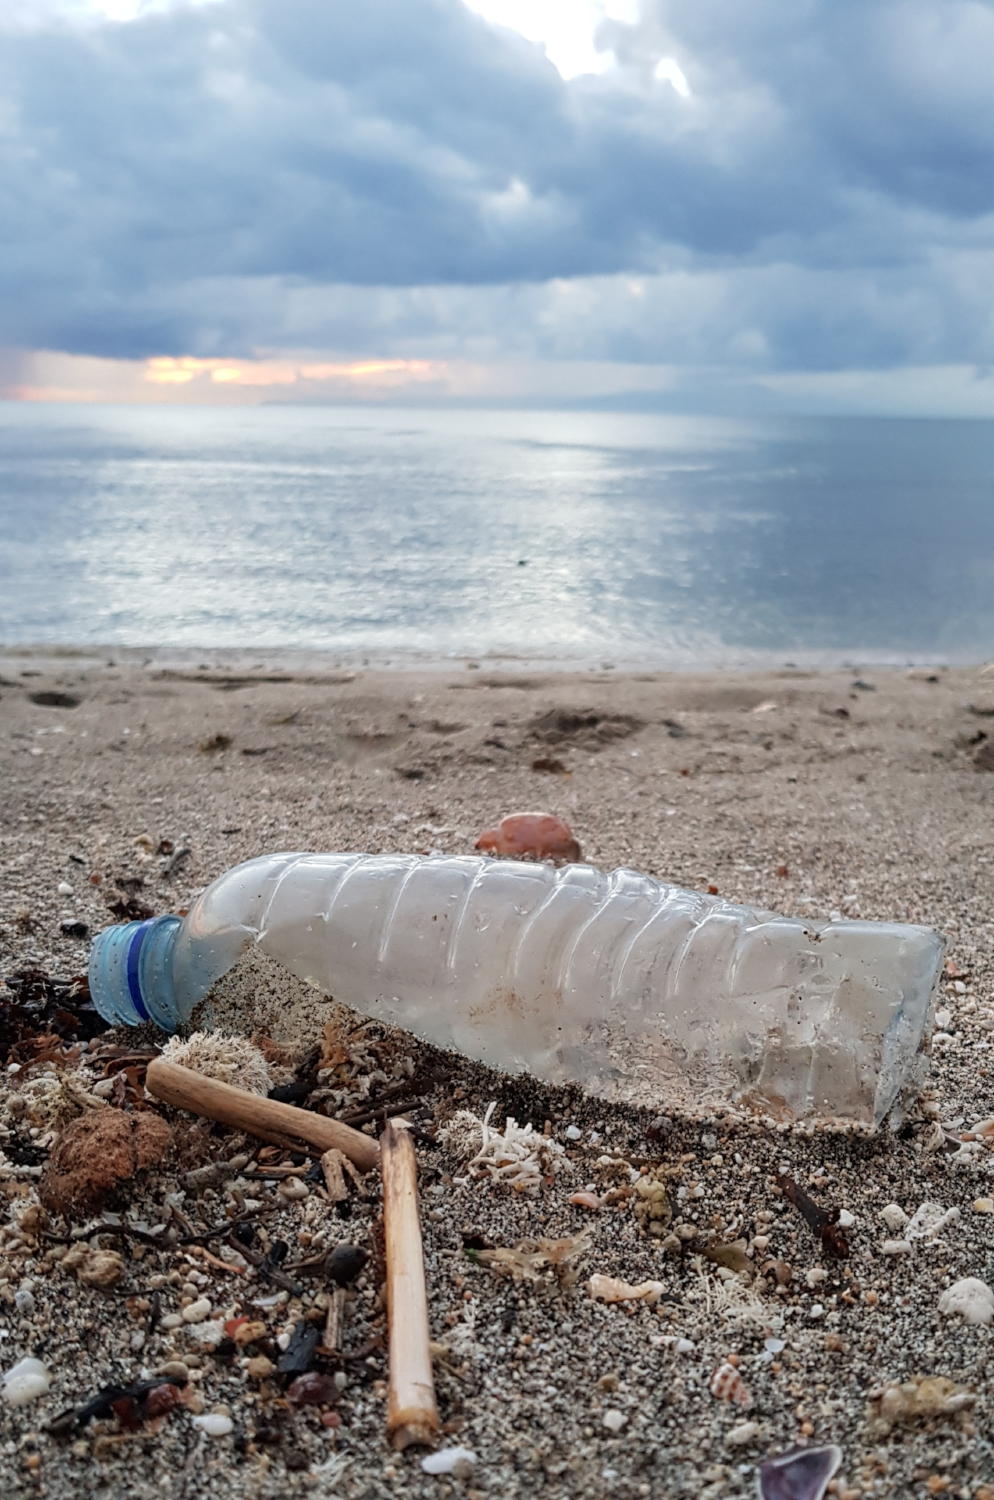 Fighting plastic pollution with plants - How one company plans to replace Indonesia's disposable plastic with plant-based and compostable alternatives.